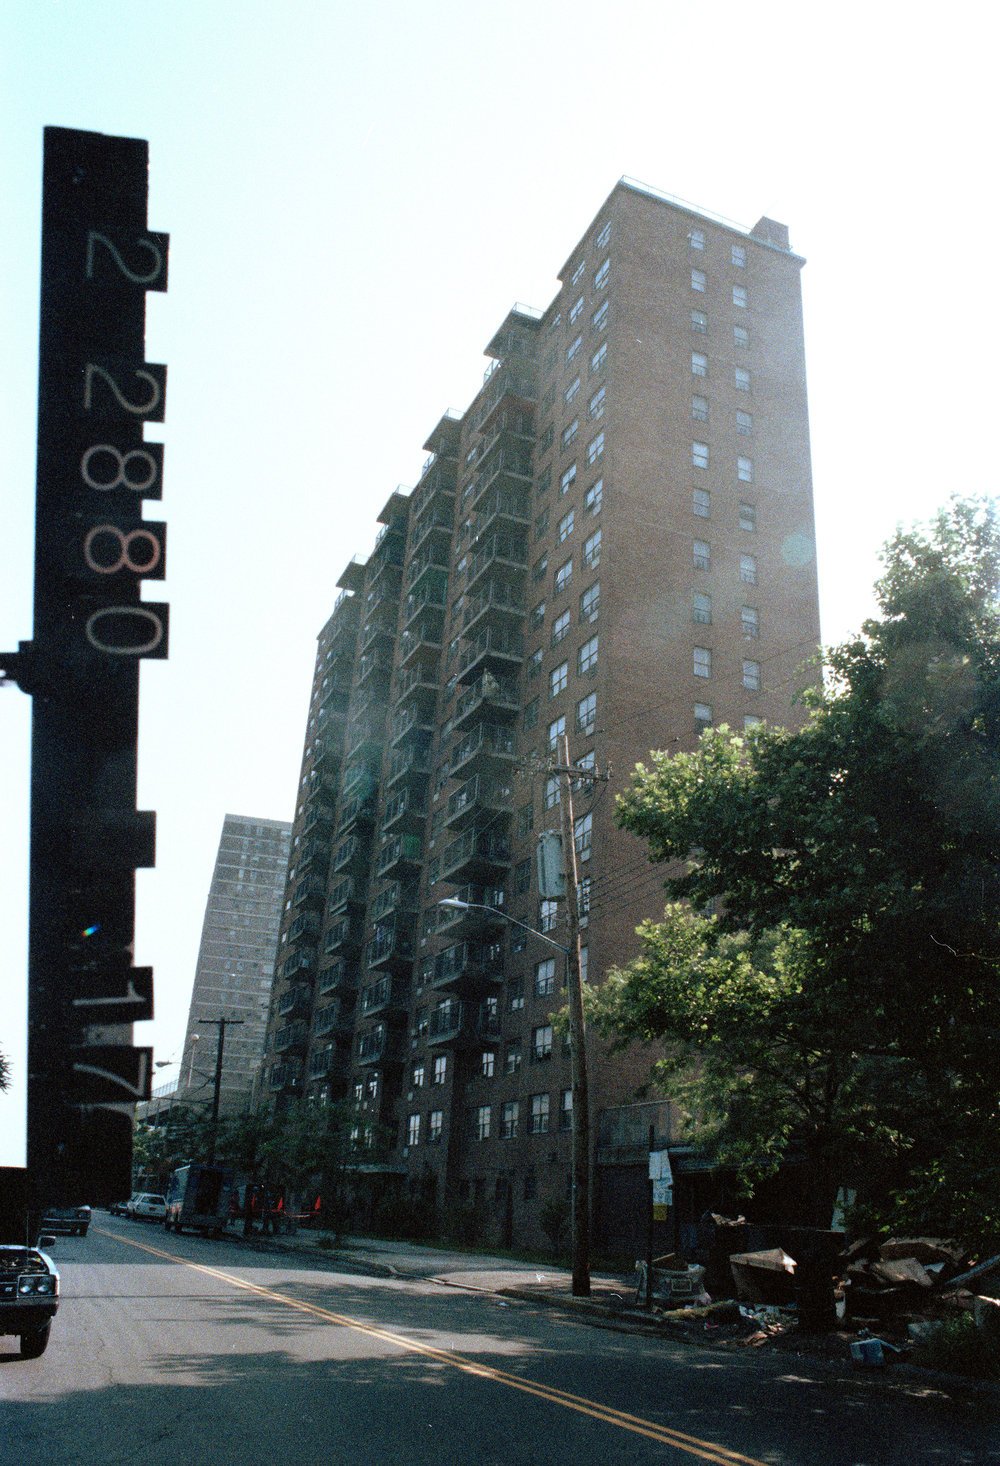 1520 Sedgwick Avenue, Bronx, ca. 1985. DOF Tax Photo Collection, NYC Municipal Archives.